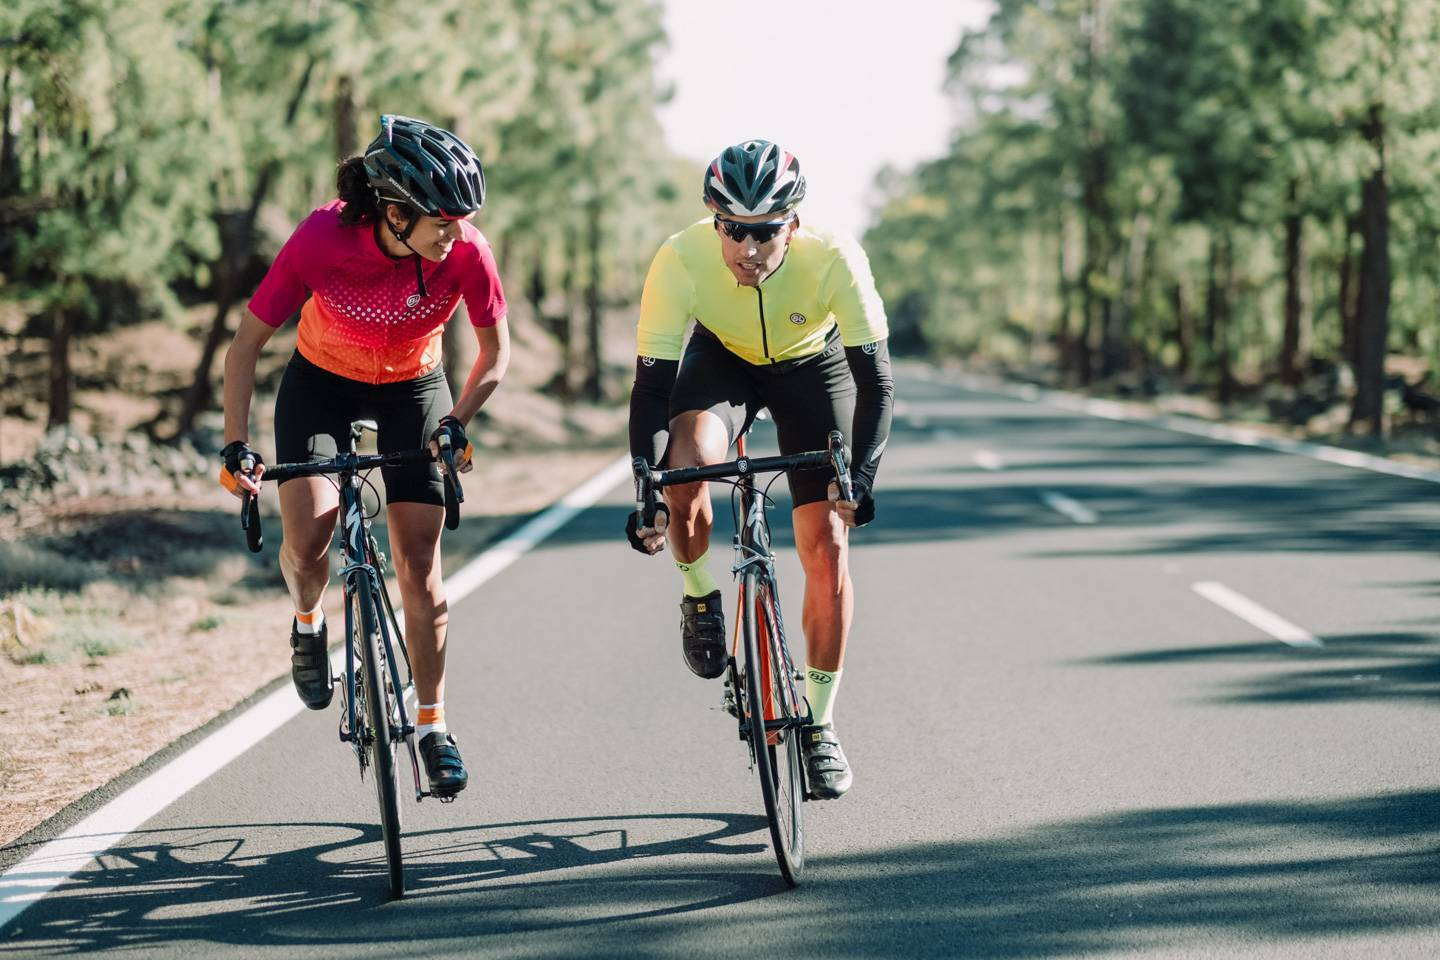 Bicycle Line Spring/Summer 2018 collection - Premium cycling wear